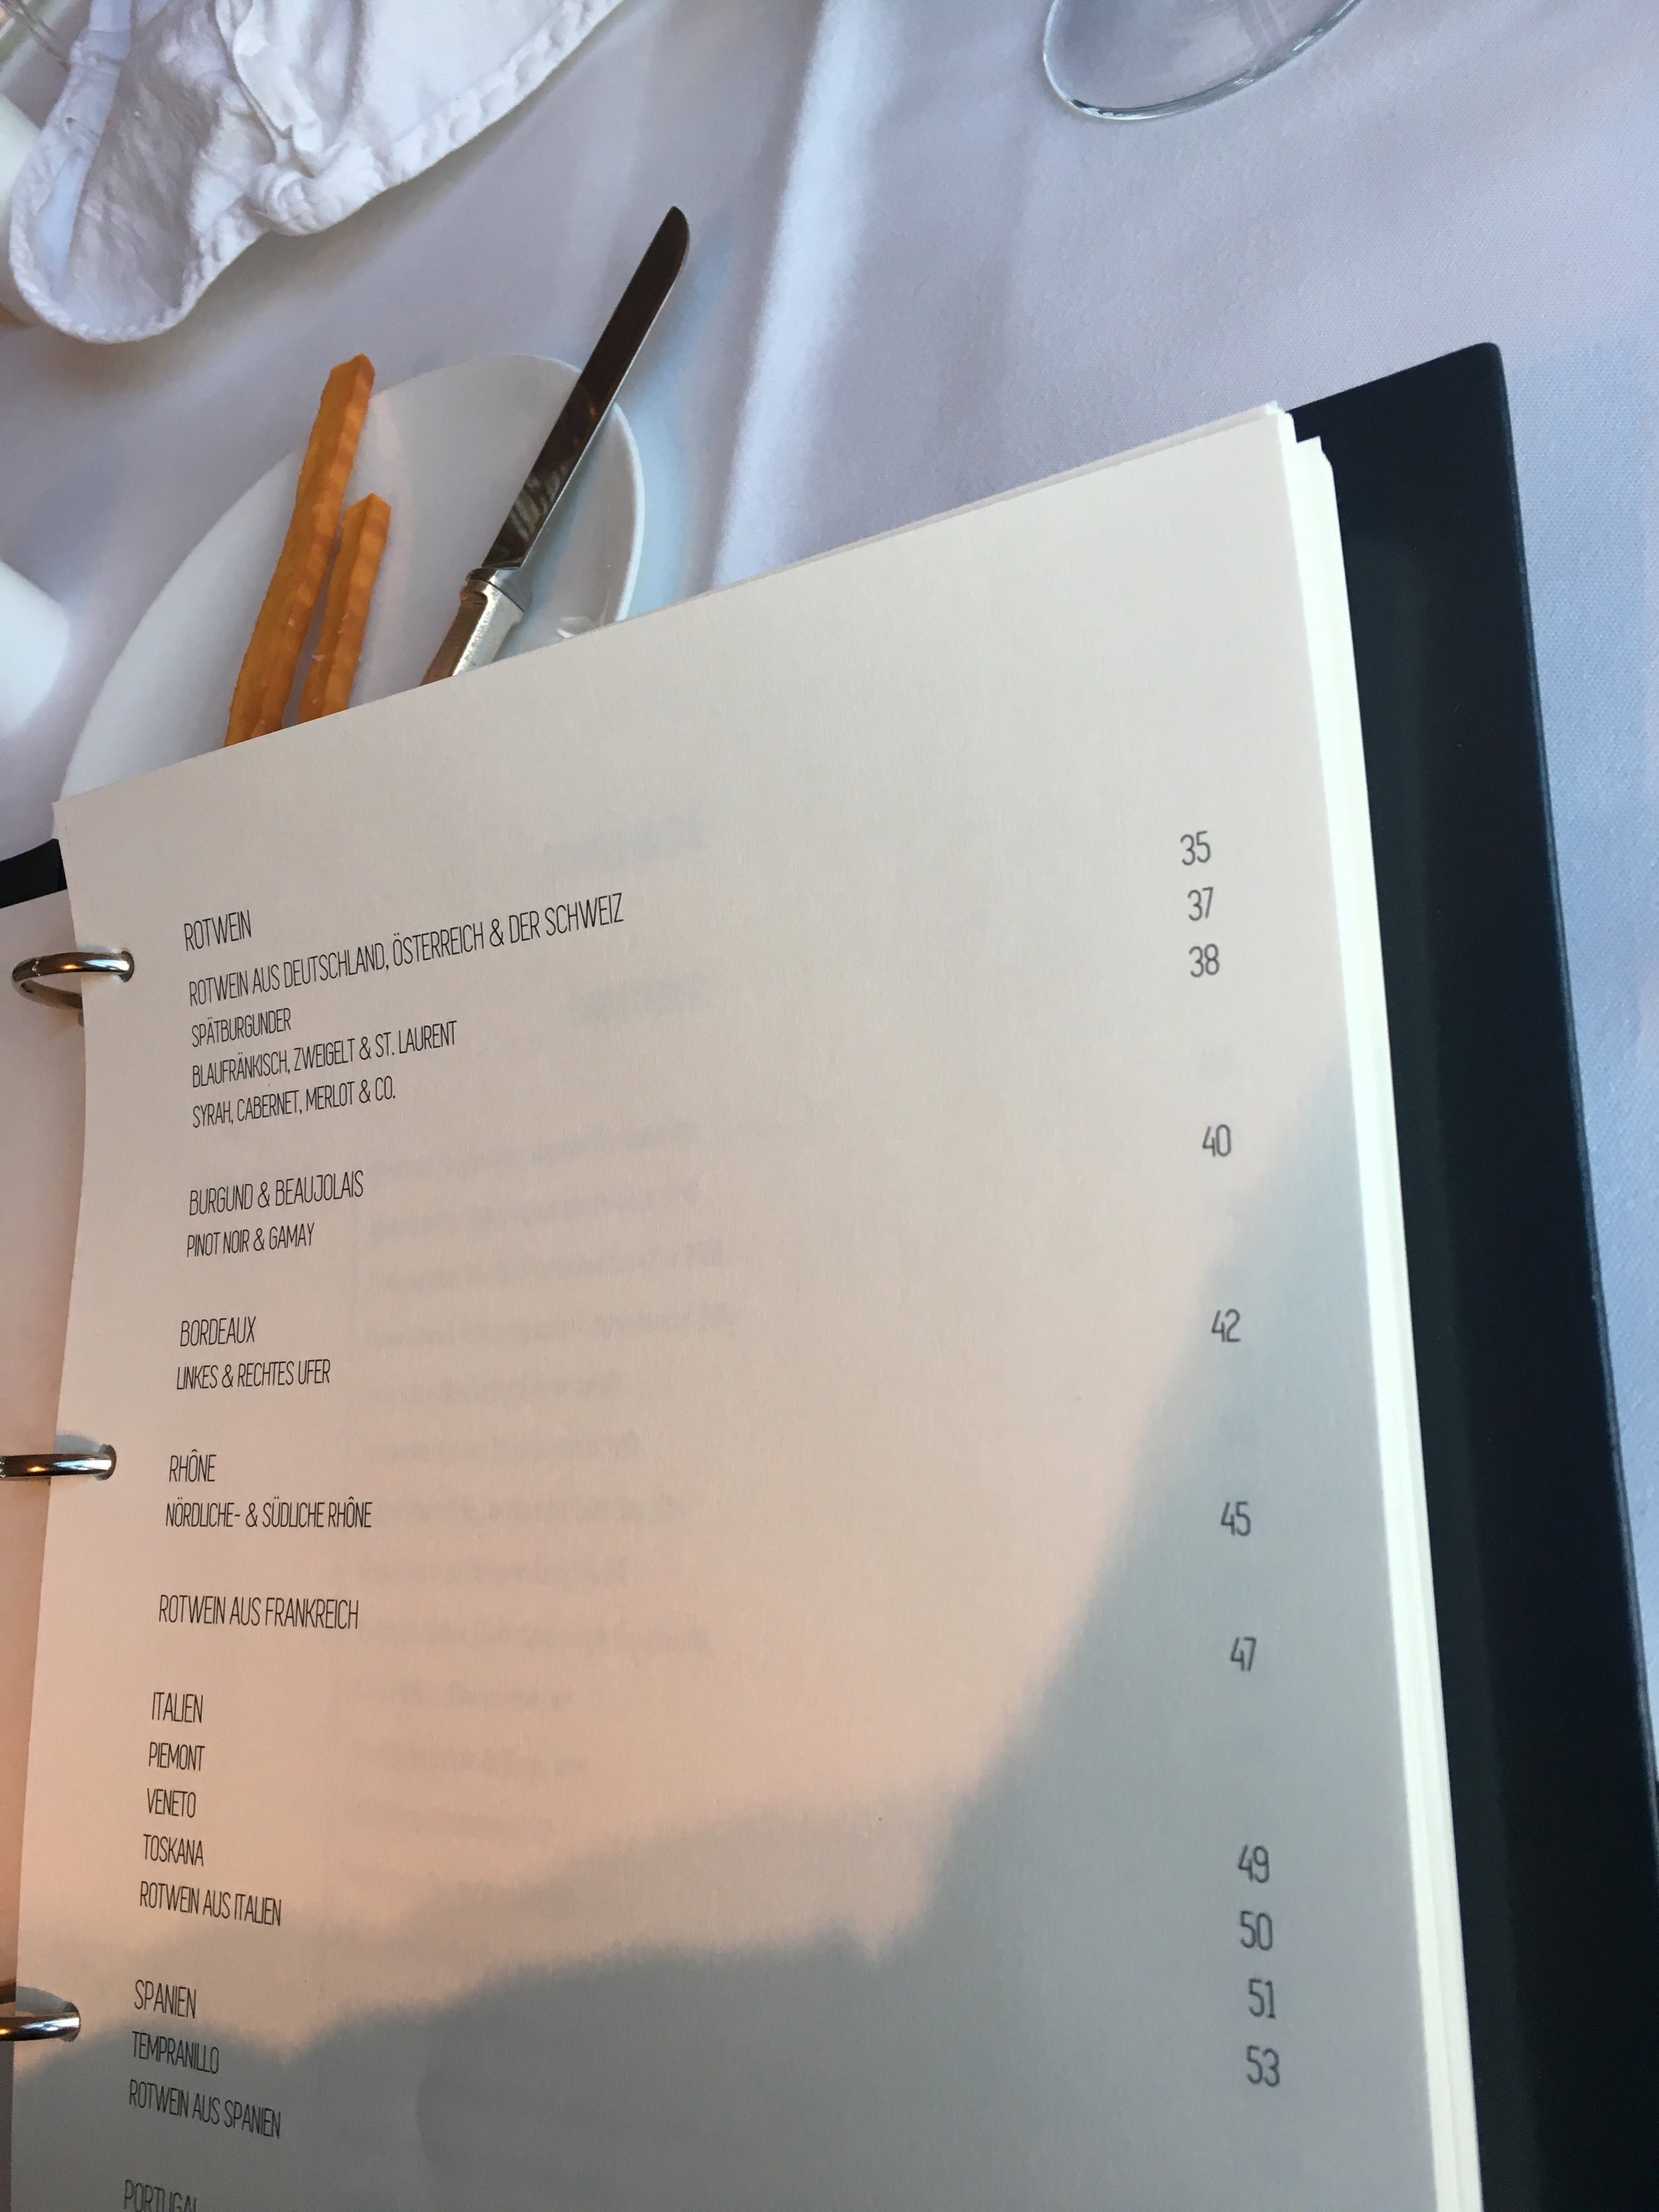 Contents of the wine menu